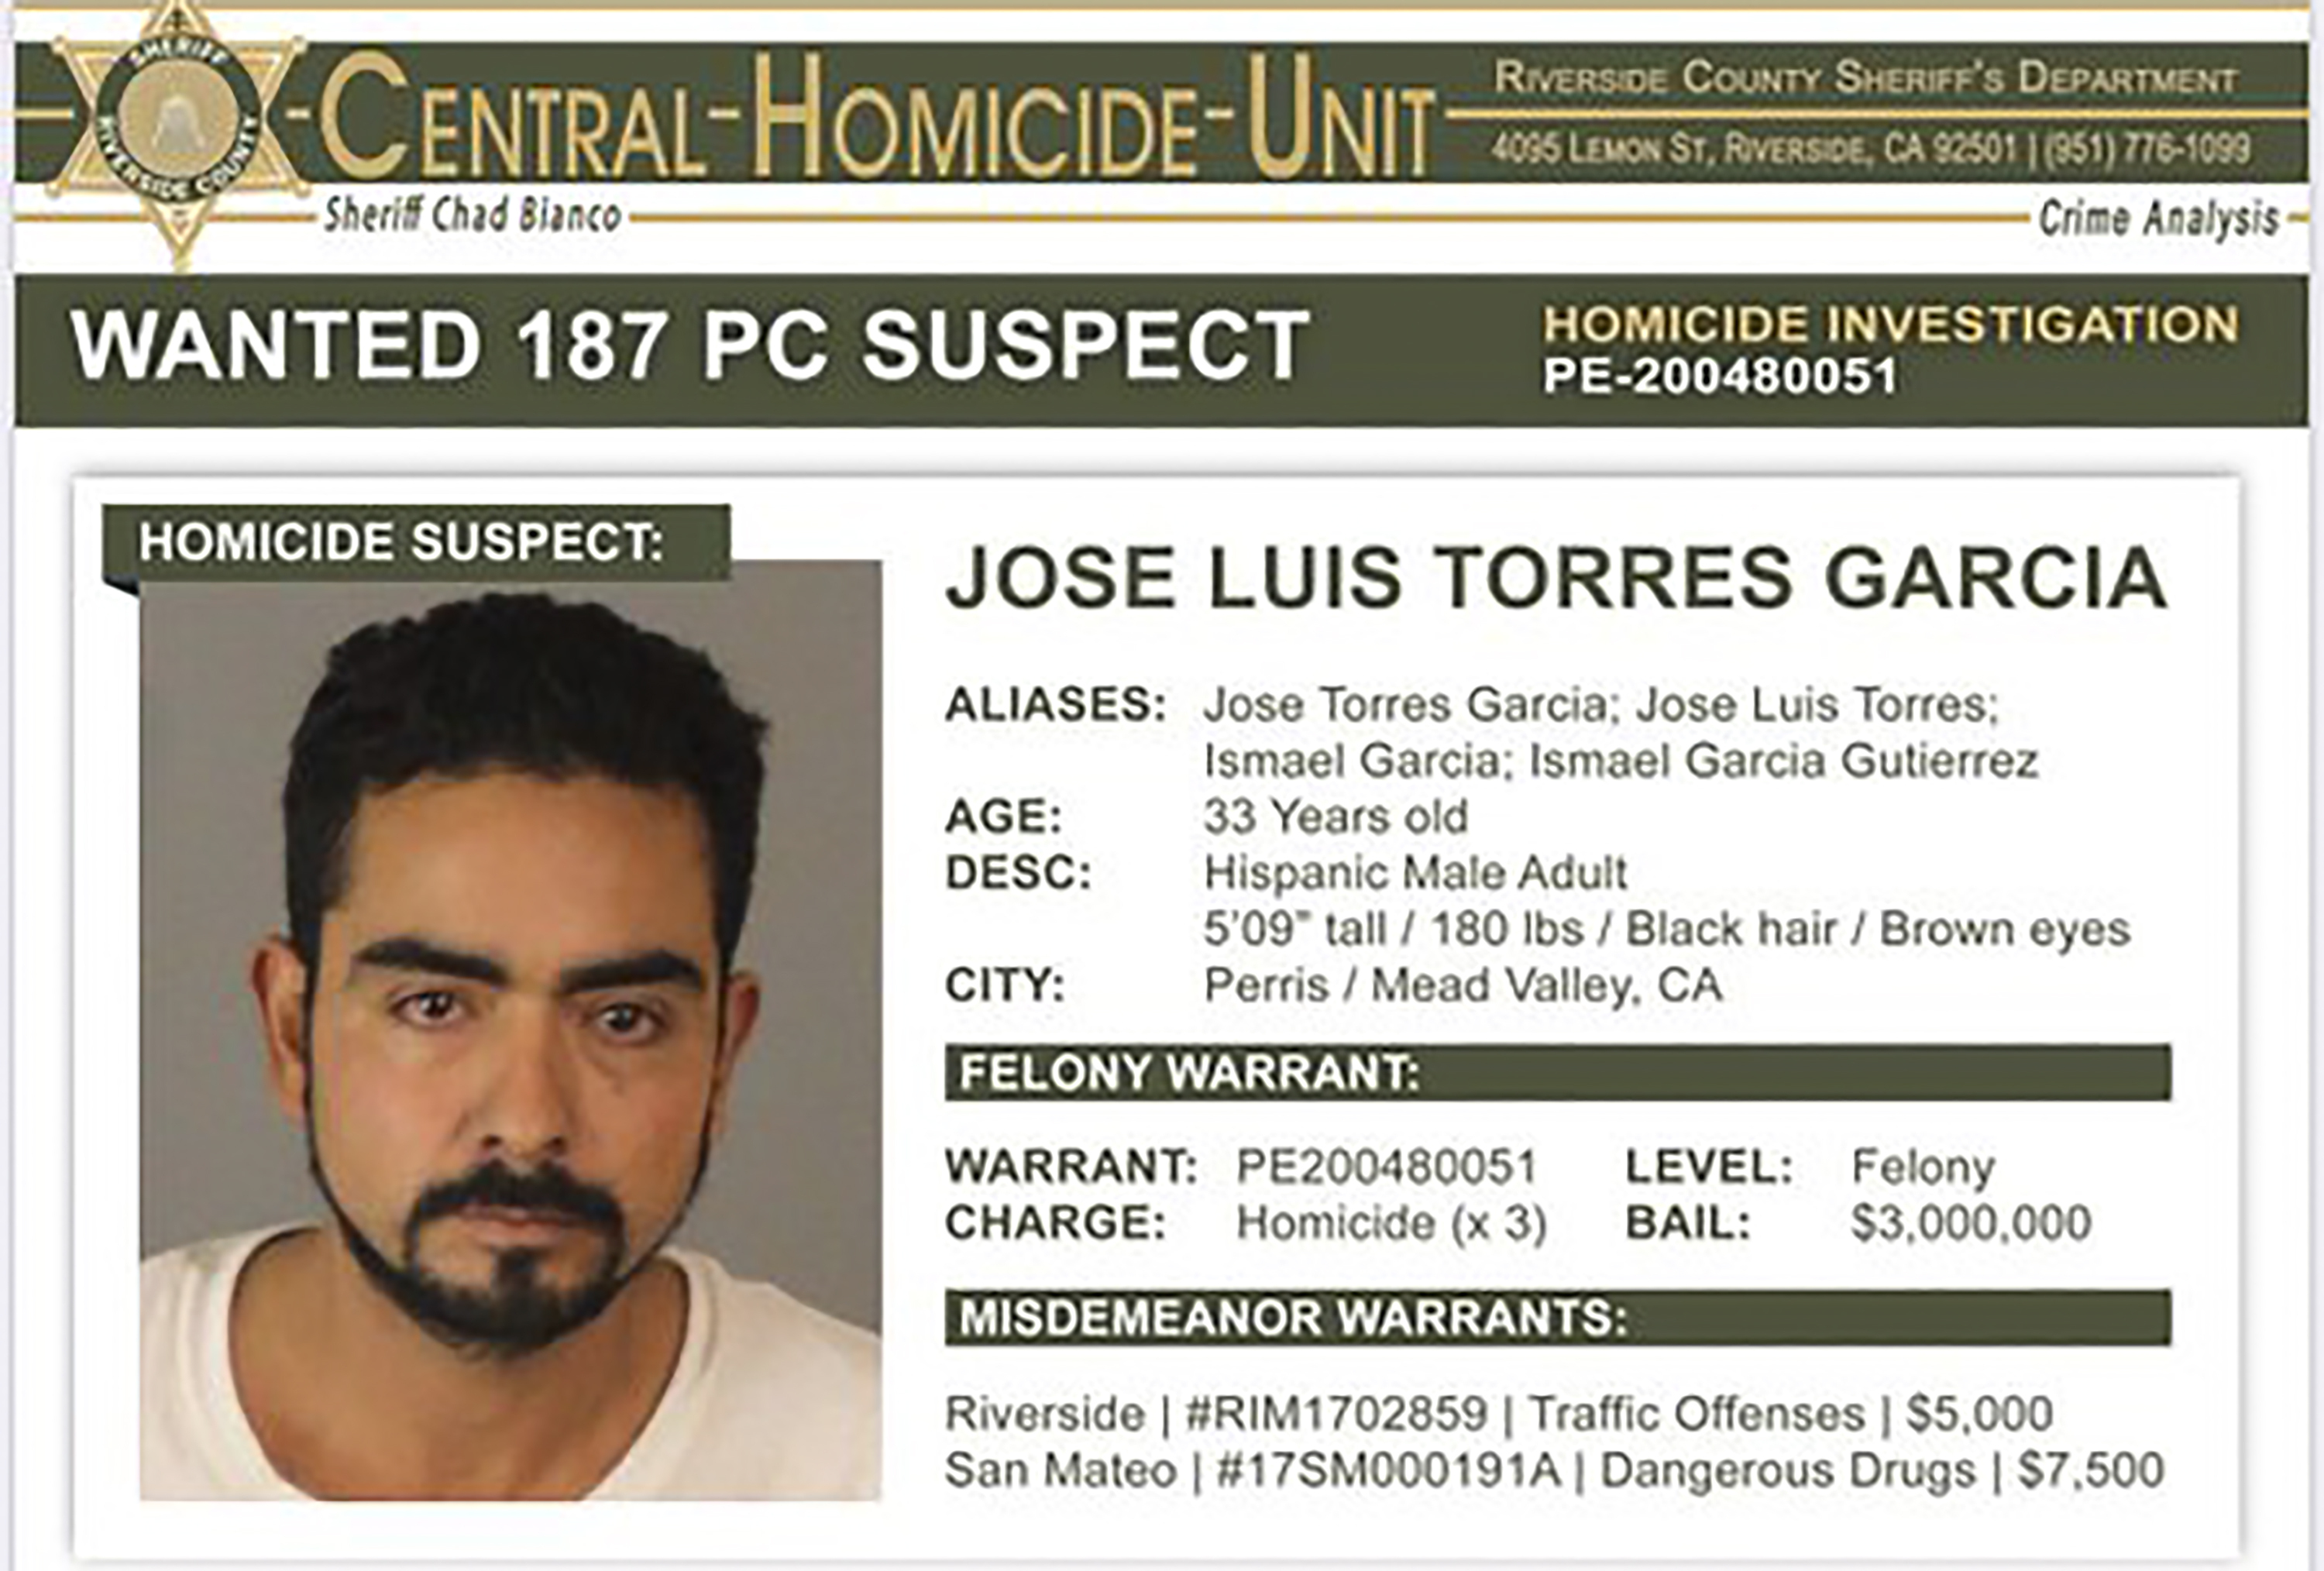 Police search for man after 3 bodies found in California